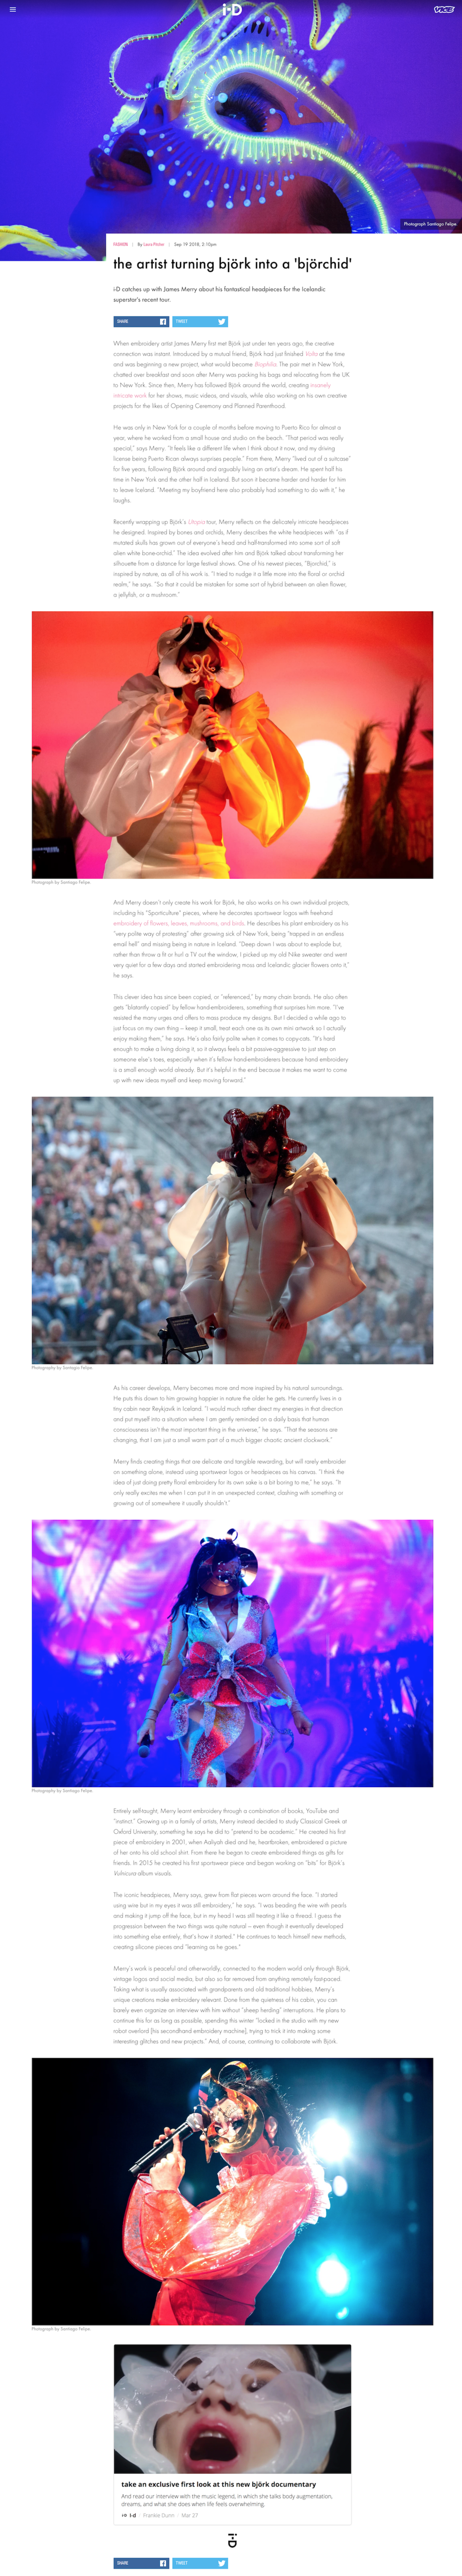 the artist turning björk into a 'björchid' - i-D.png